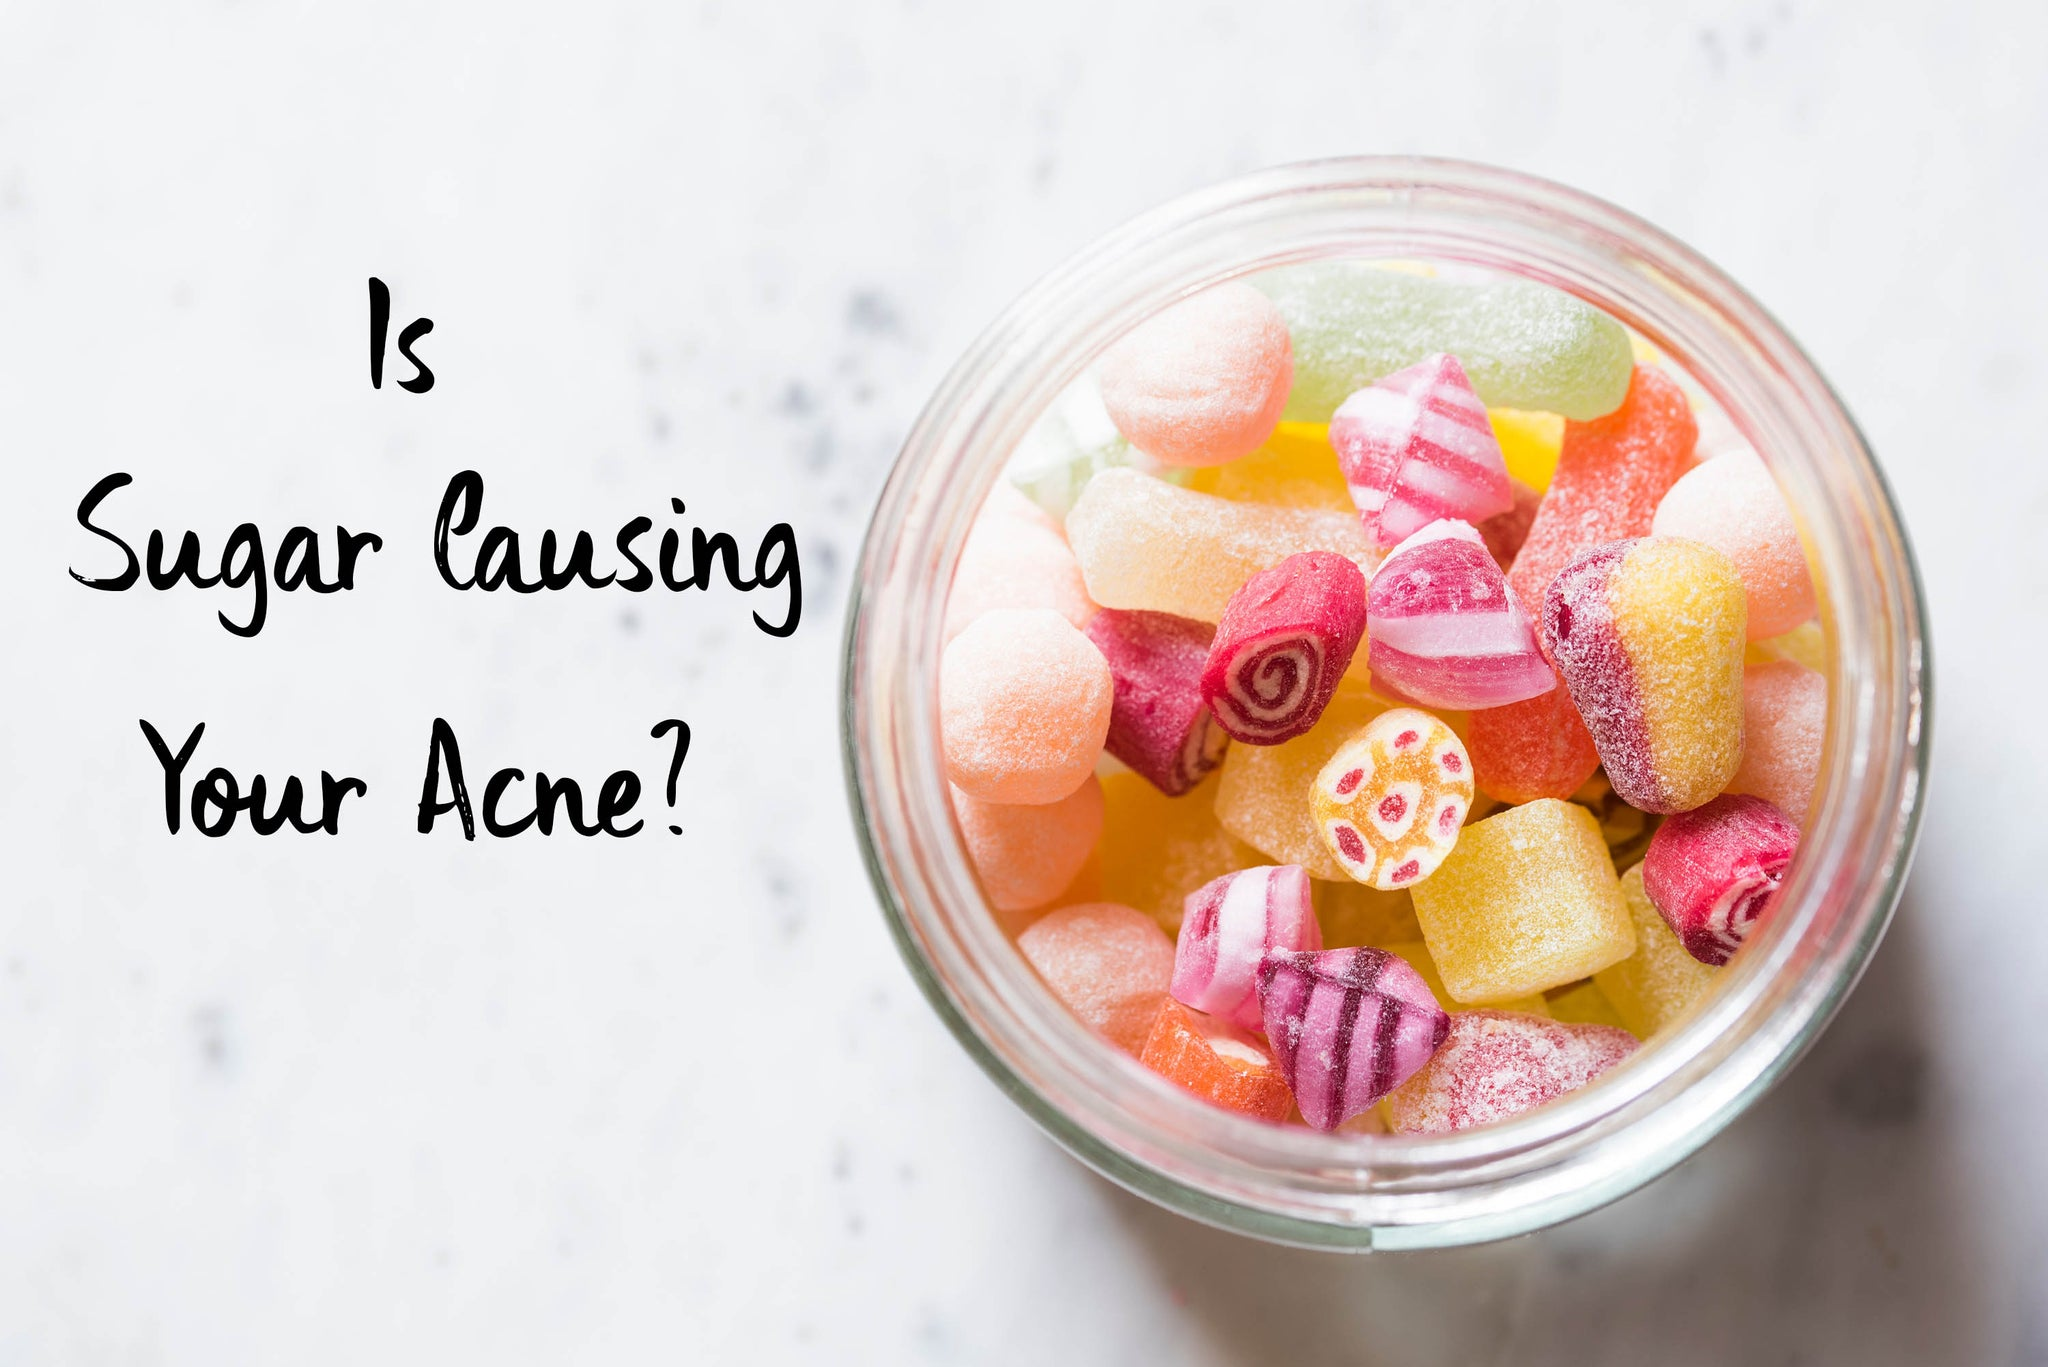 Is Sugar Causing your Acne?